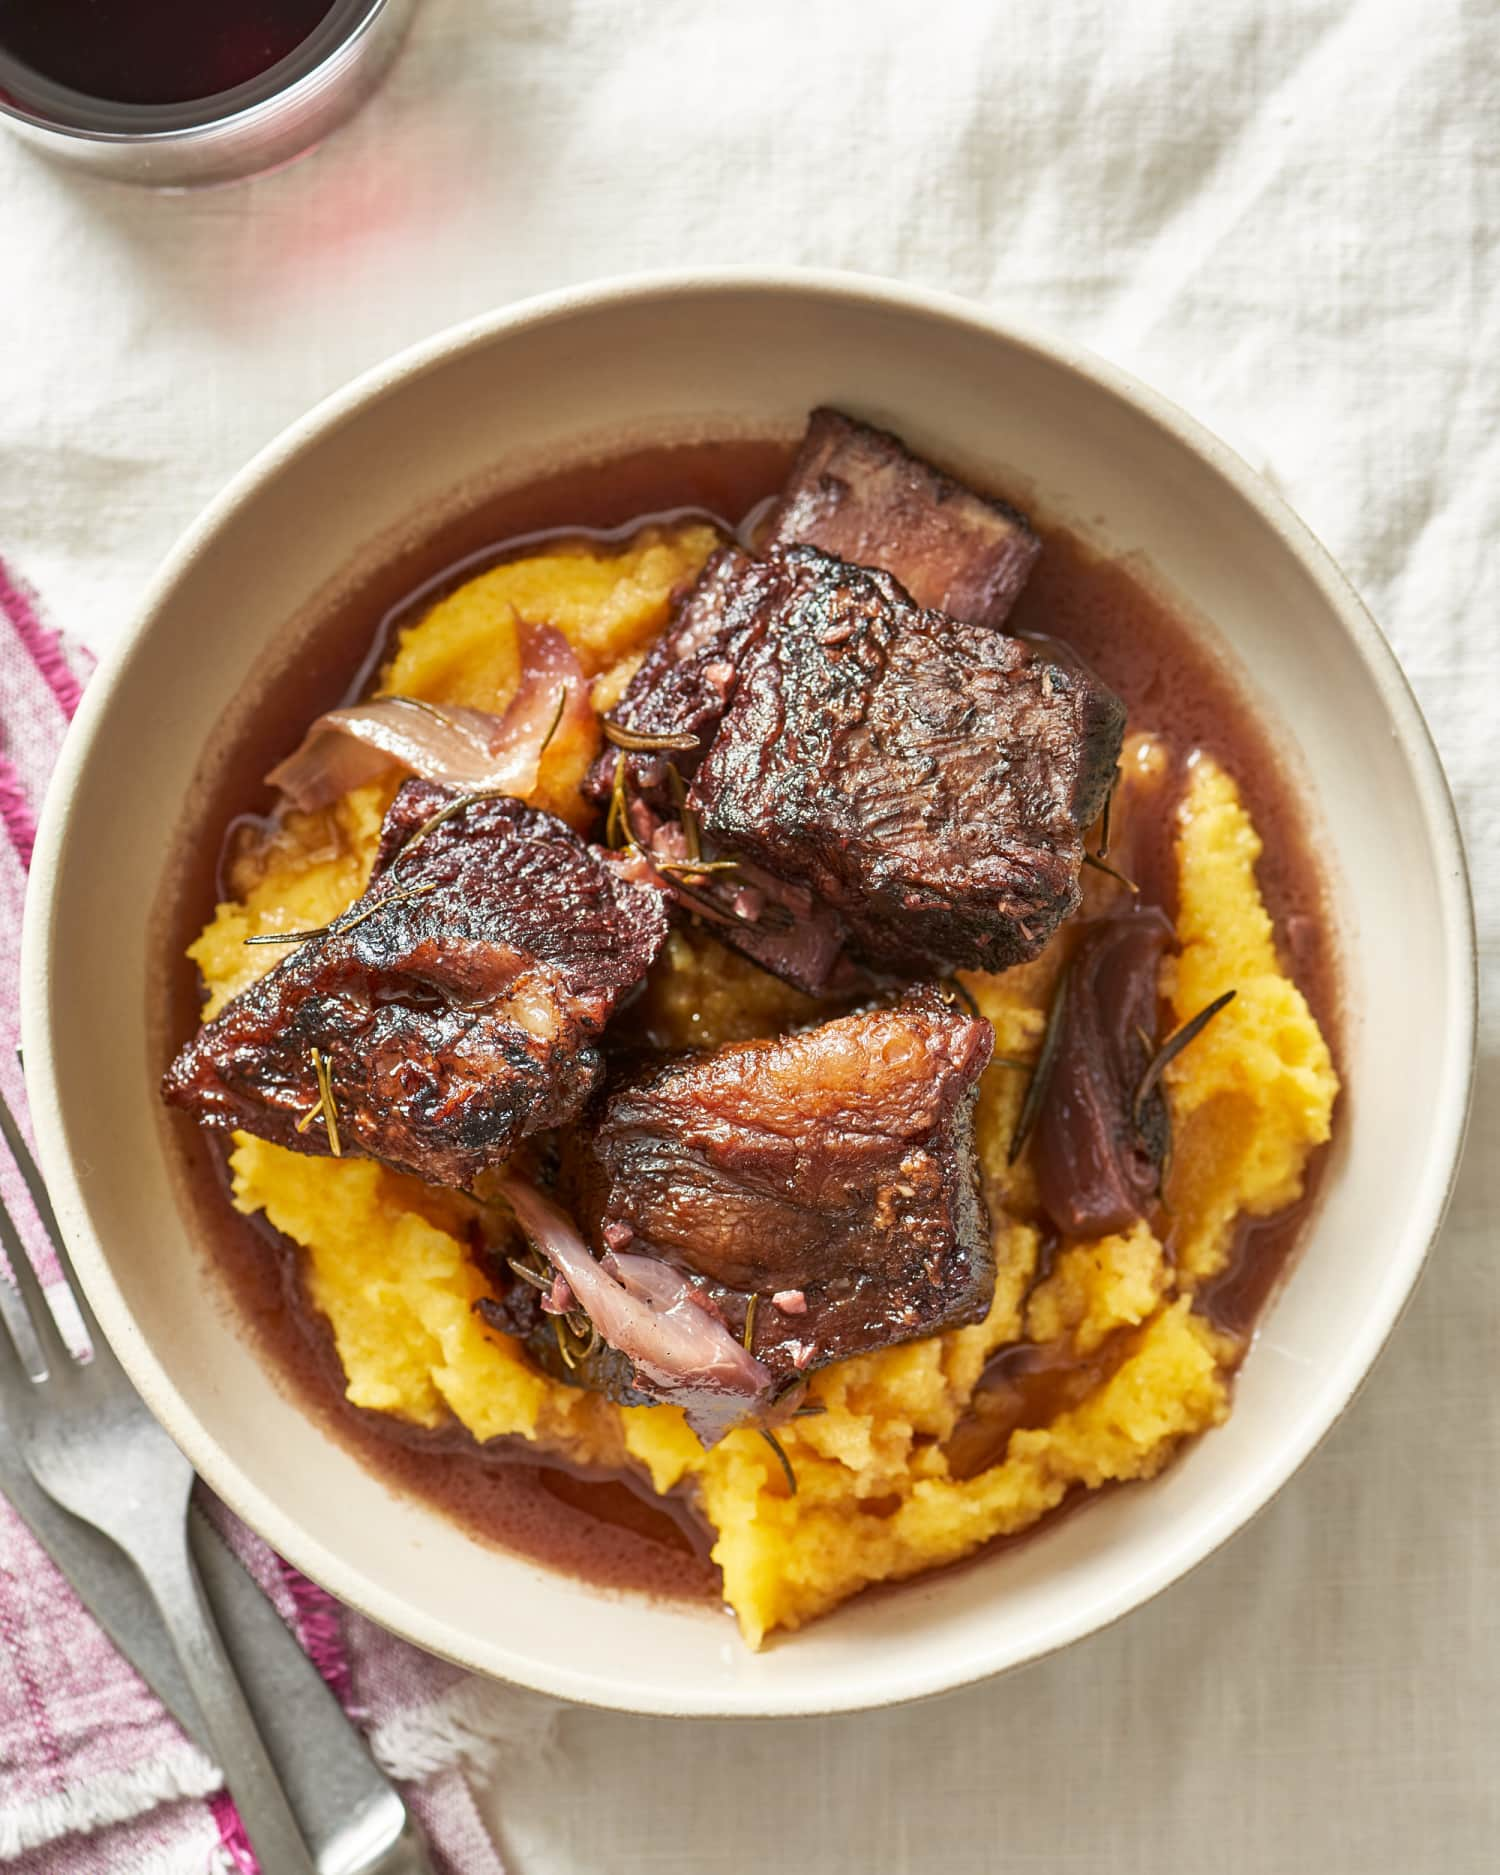 How To Braise Beef Short Ribs in a Dutch Oven